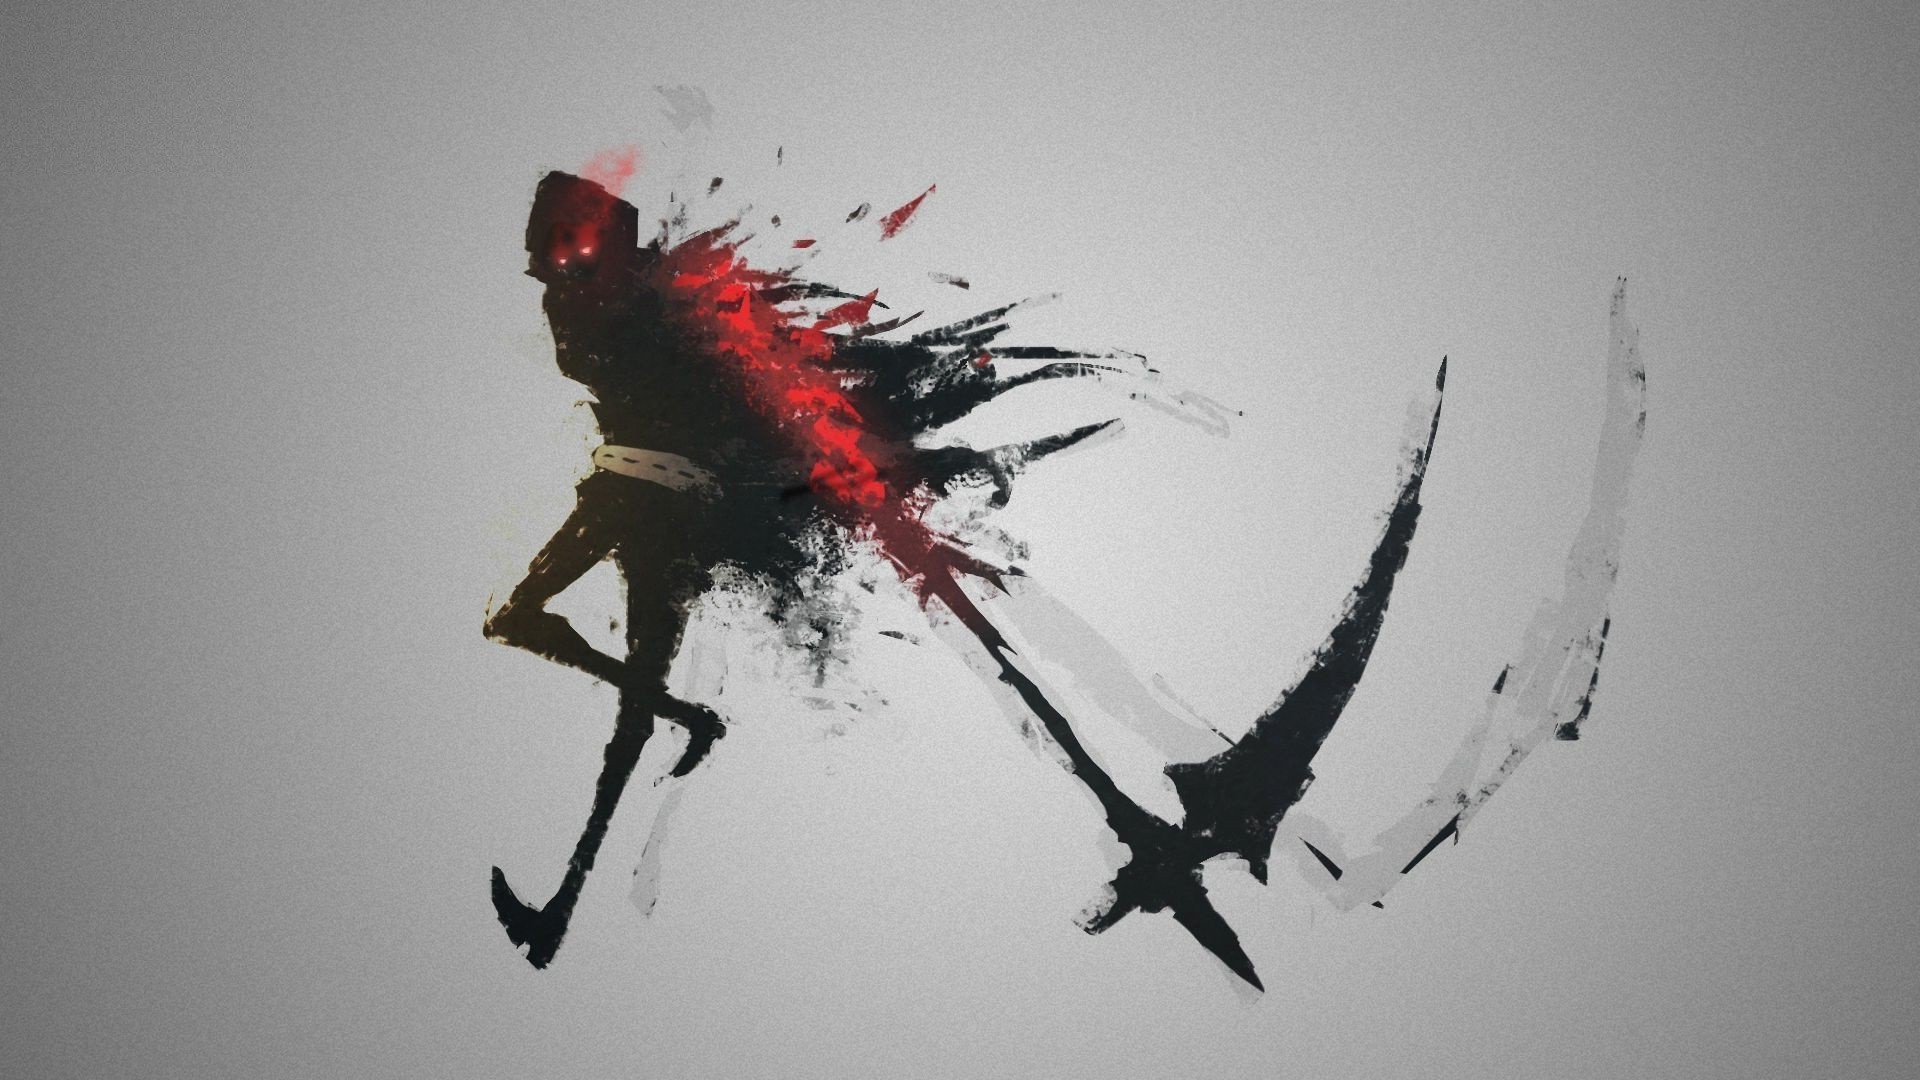 Dark Blood Wallpaper Grim Reaper Artwork Concept Art Simple Background Fantasy Art